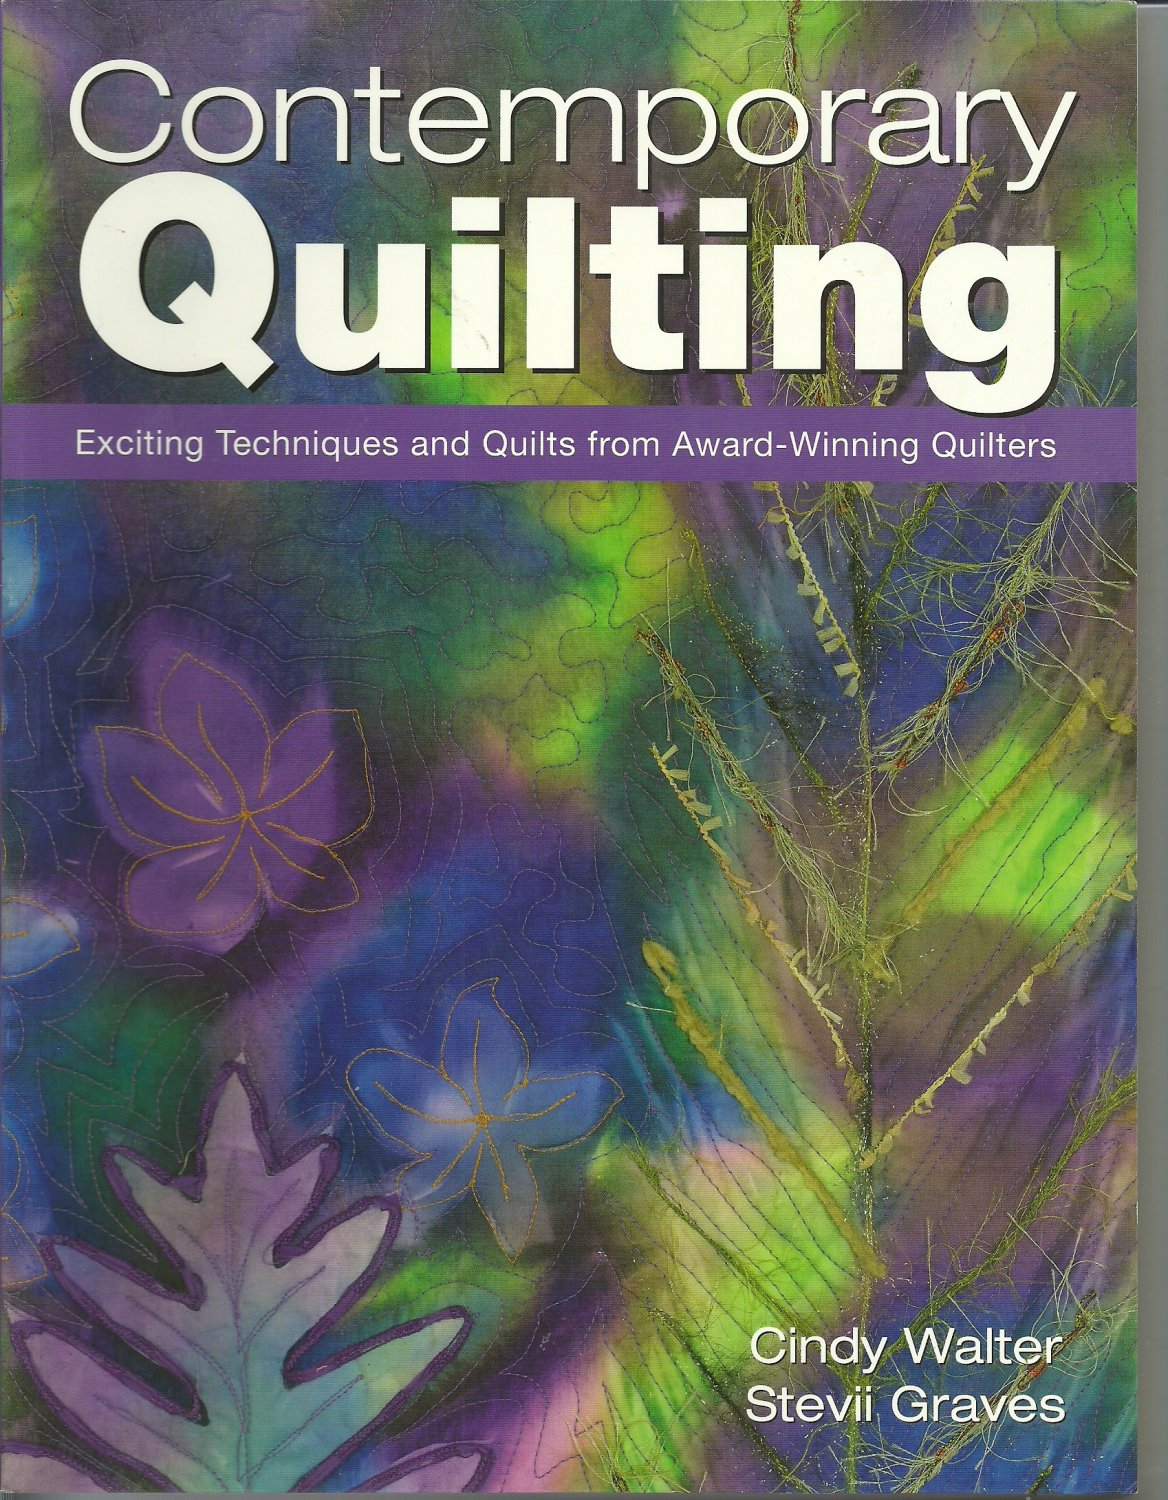 *Contemporary Quilting by Cindy Walter and Stevii Graves 144 pgs